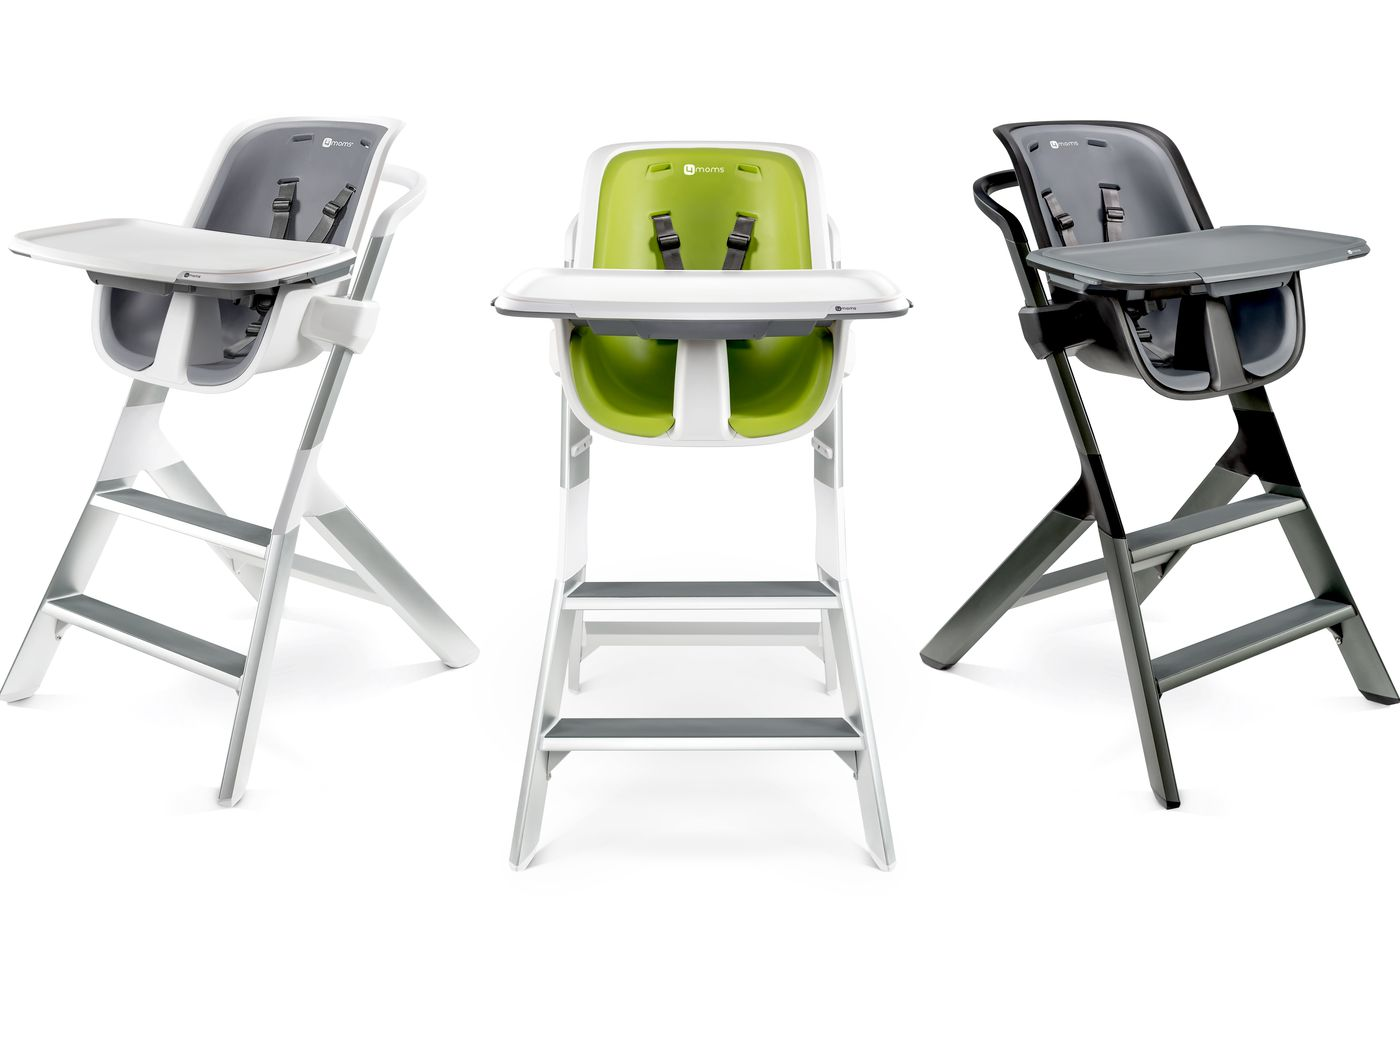 This Magnetic High Chair Has Some Clever Features But Its